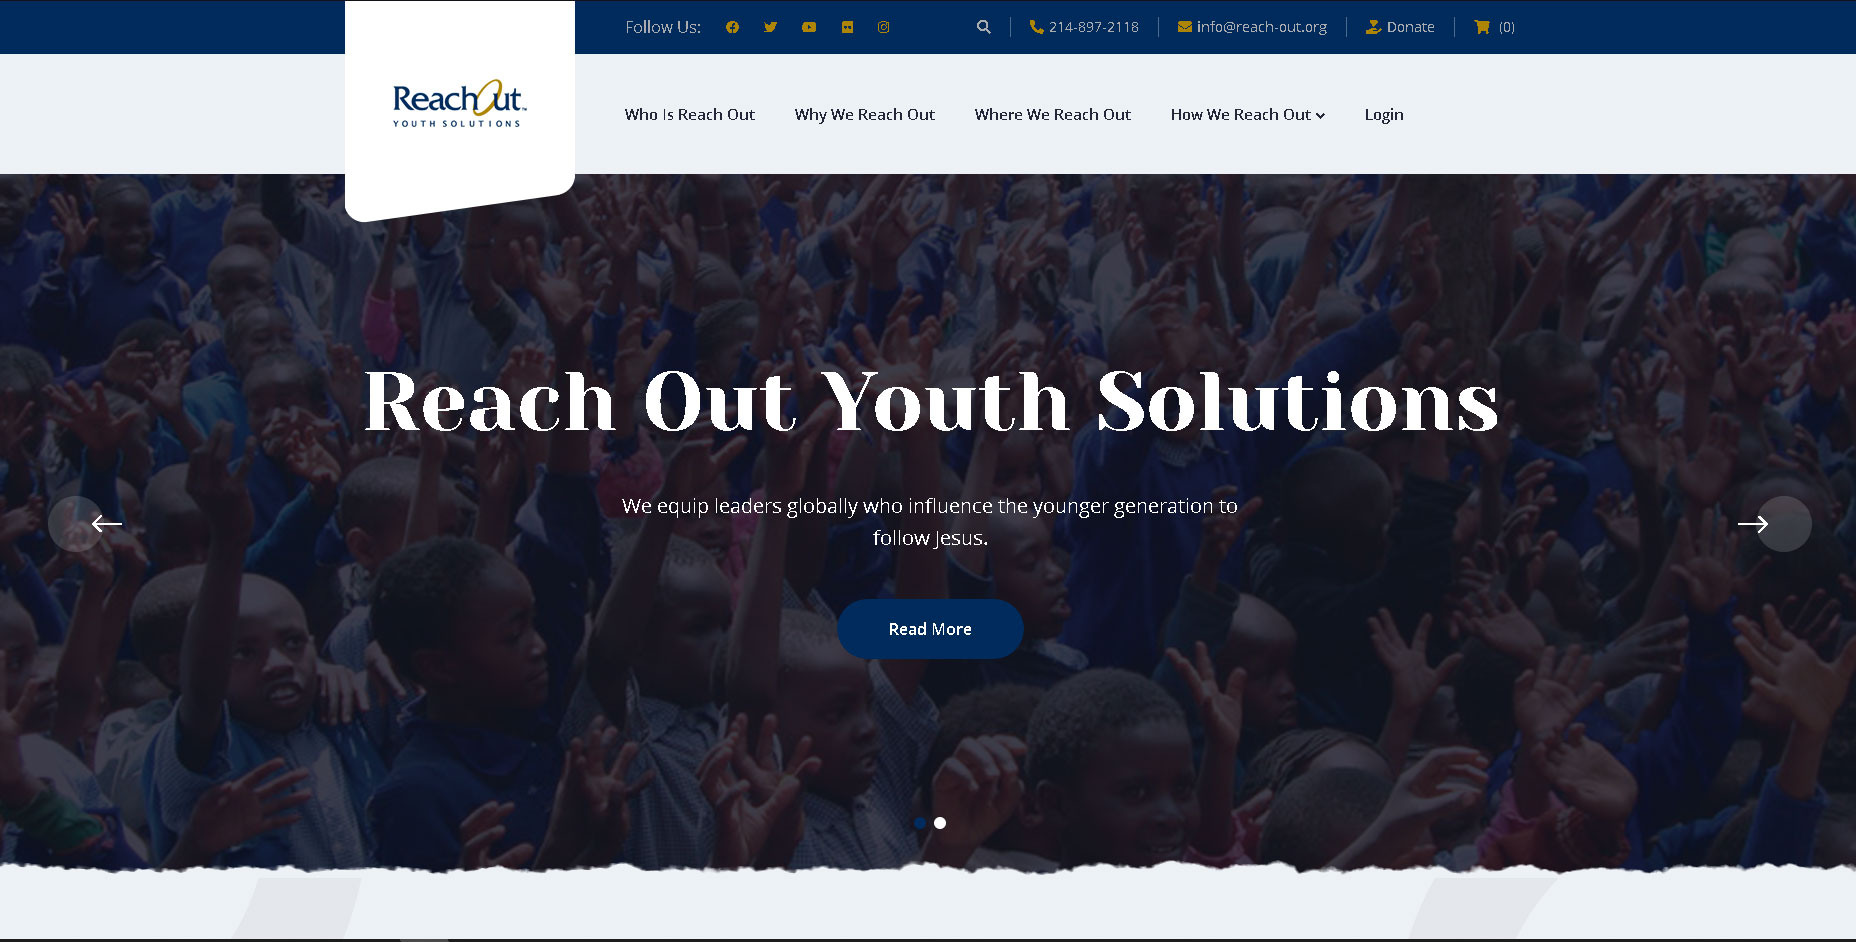 Reach Out Youth Solutions